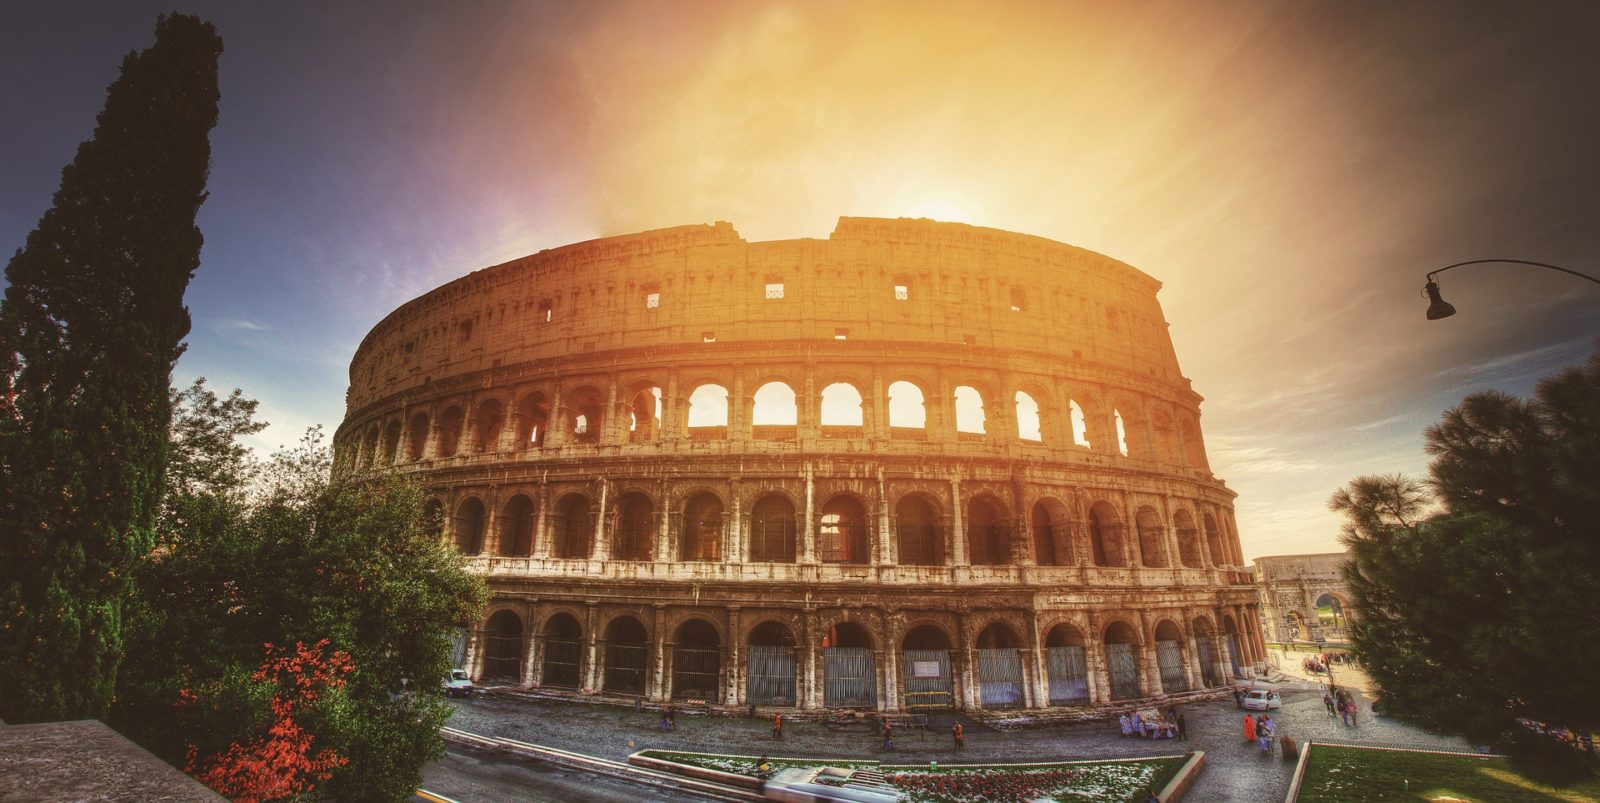 The Top 15 Attractions and Places To See In Europe